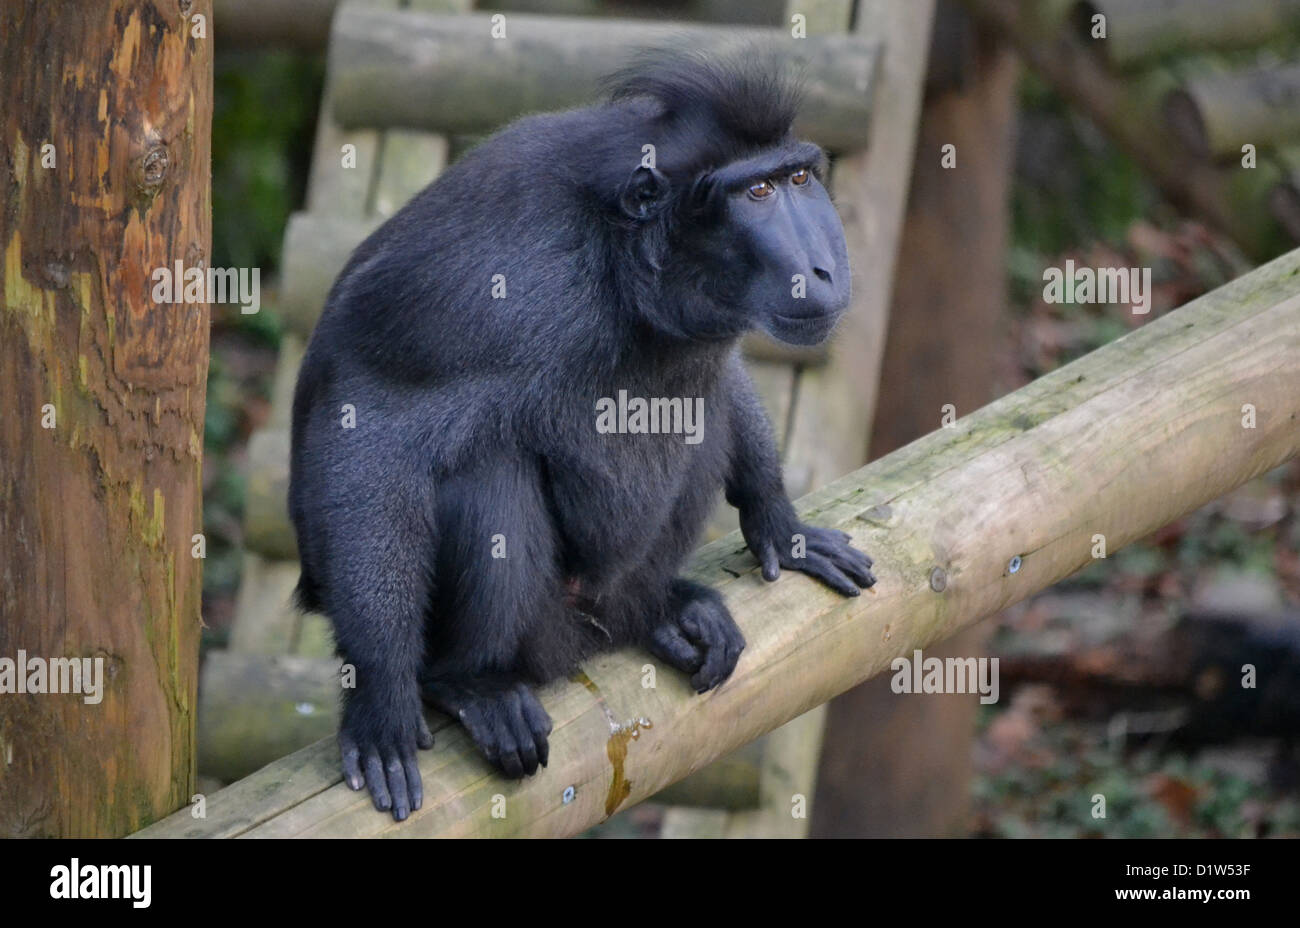 Celebes Crested Black Macaque - Stock Image